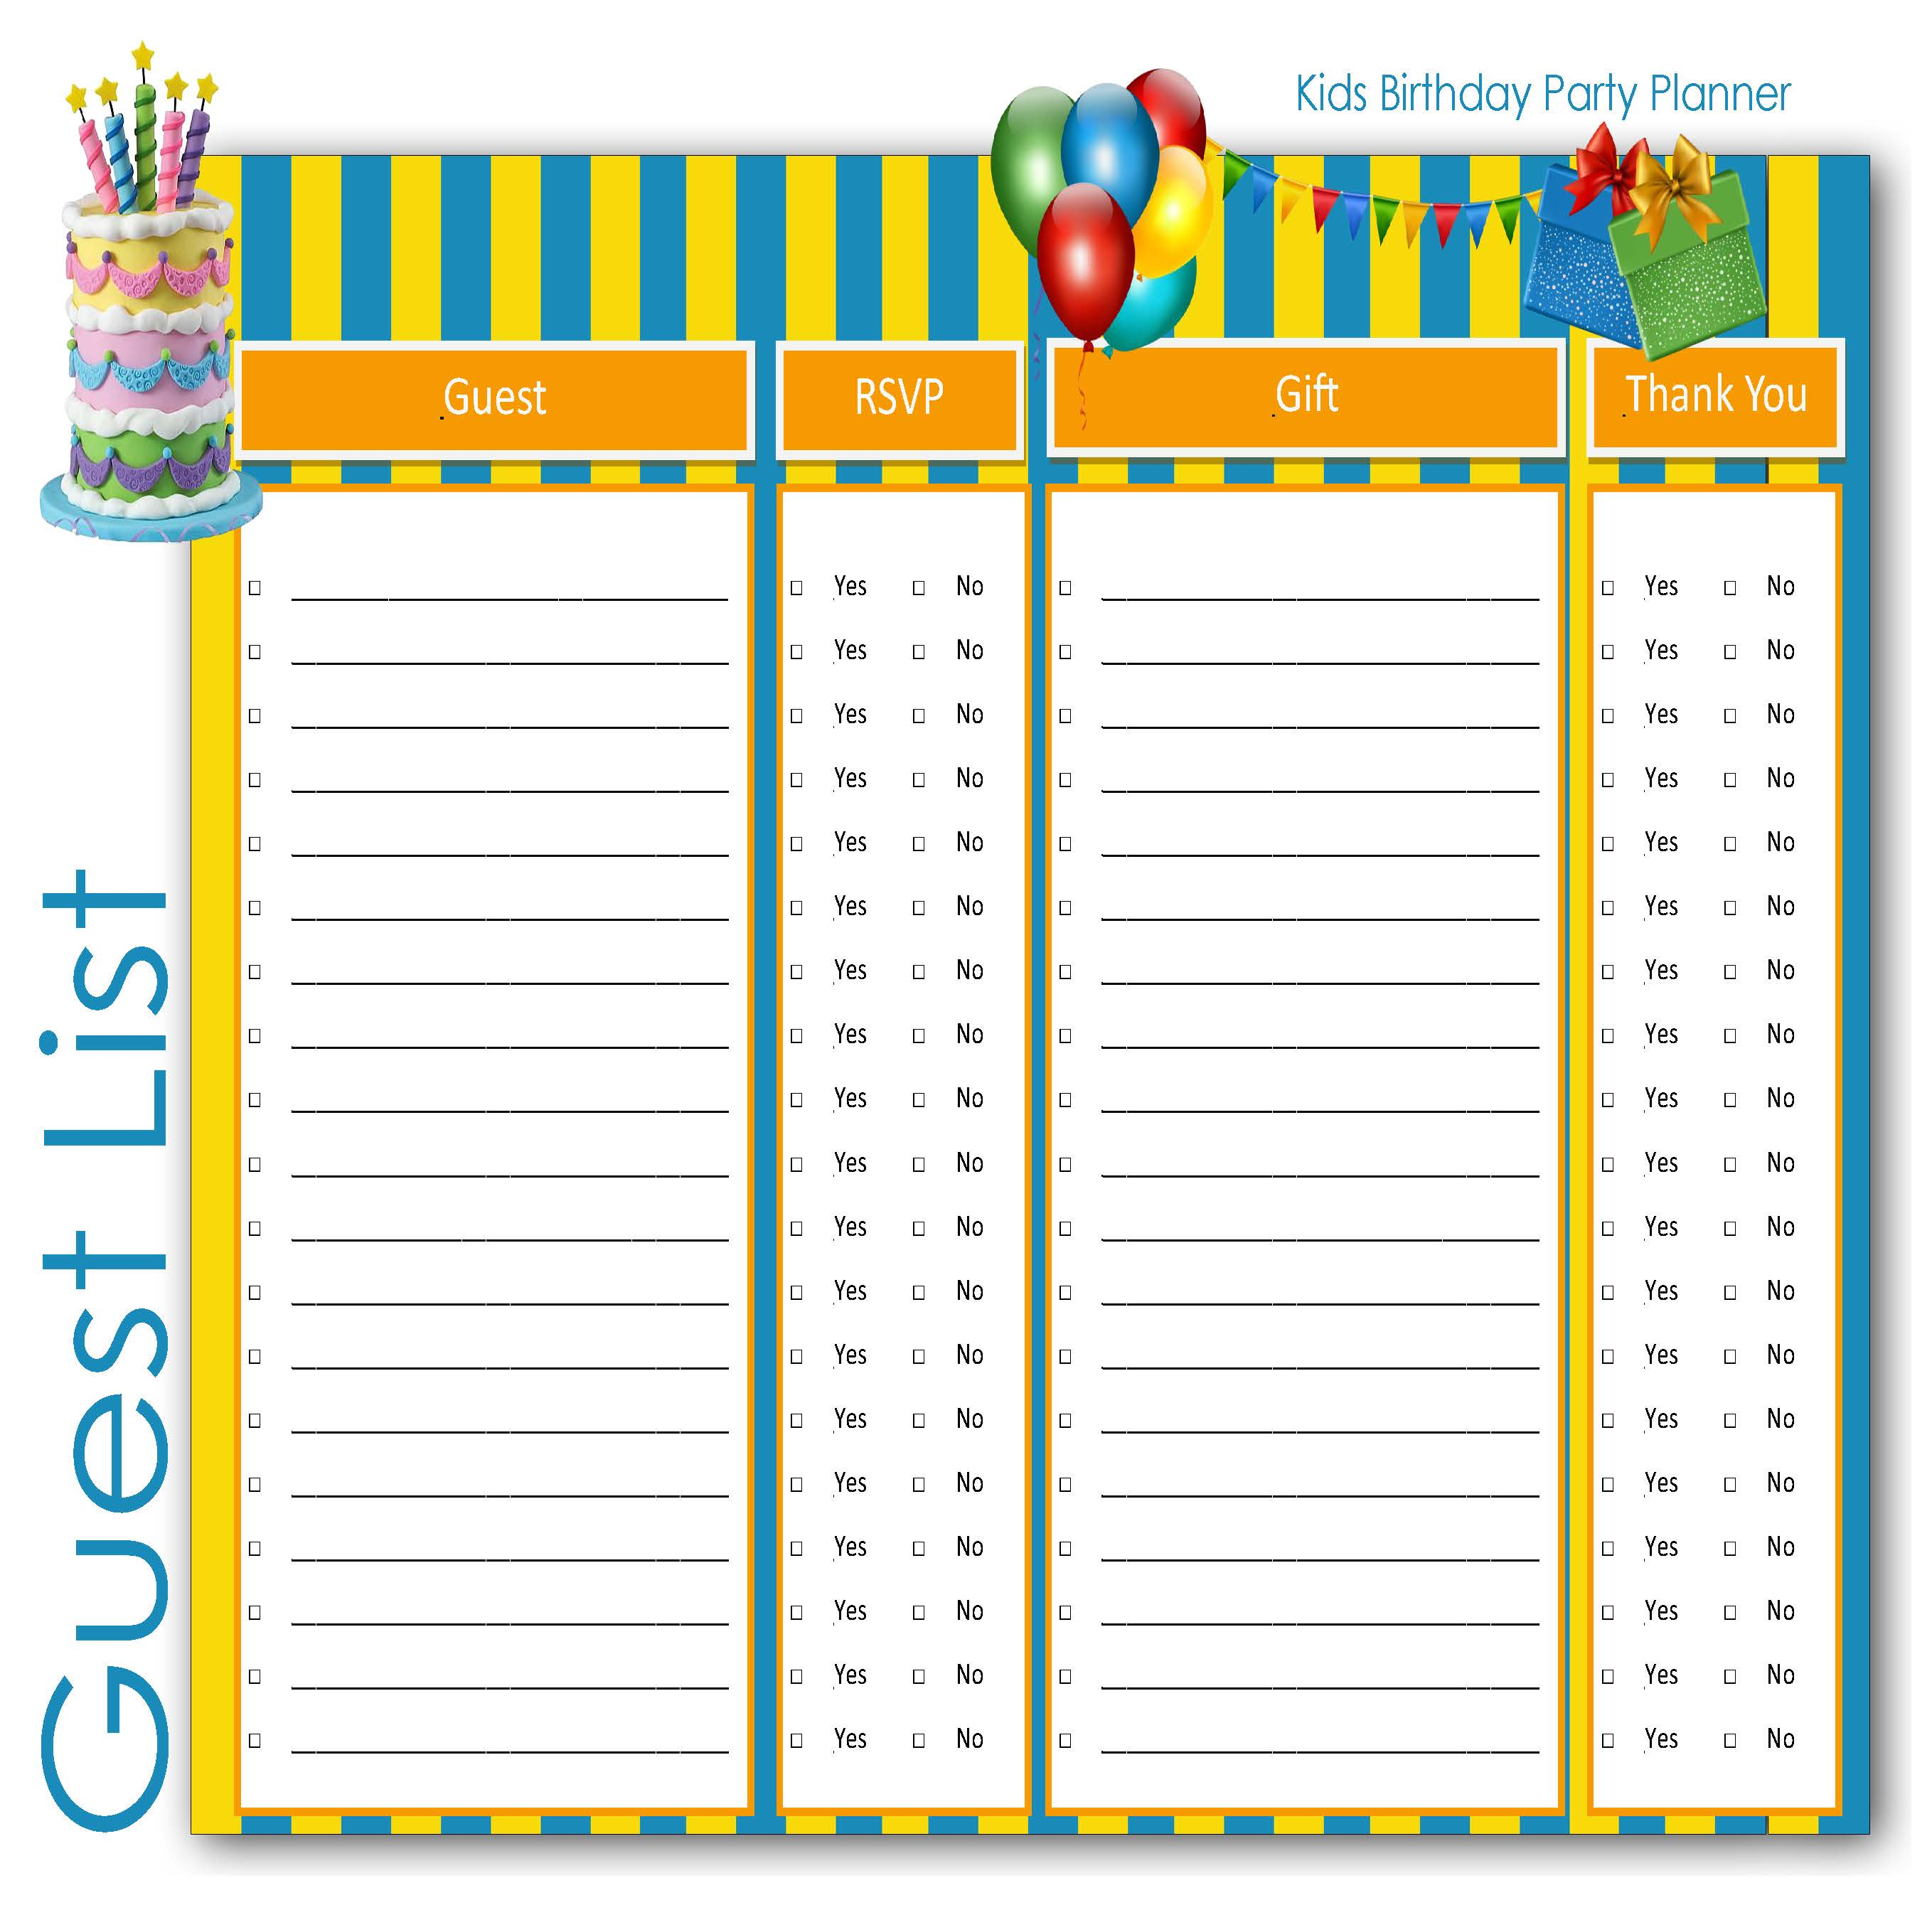 Children : Birthday Party Planner Guest List for Kids